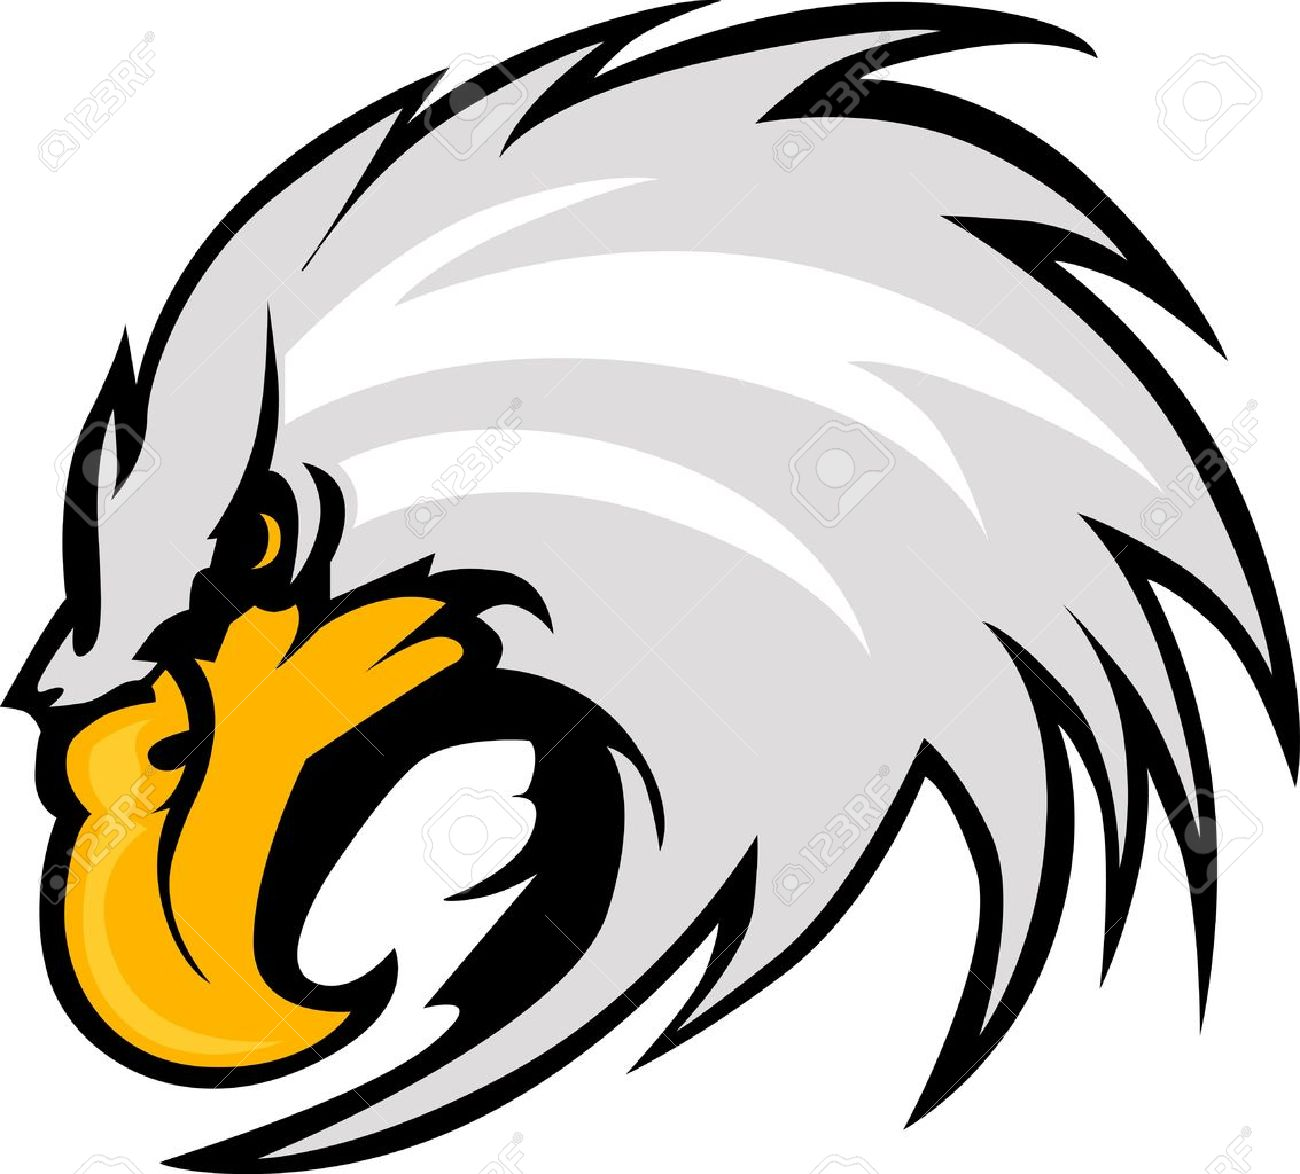 6 835 eagle head cliparts stock vector and royalty free eagle head rh 123rf com eagle head clipart black and white Eagle Clip Art Black and White